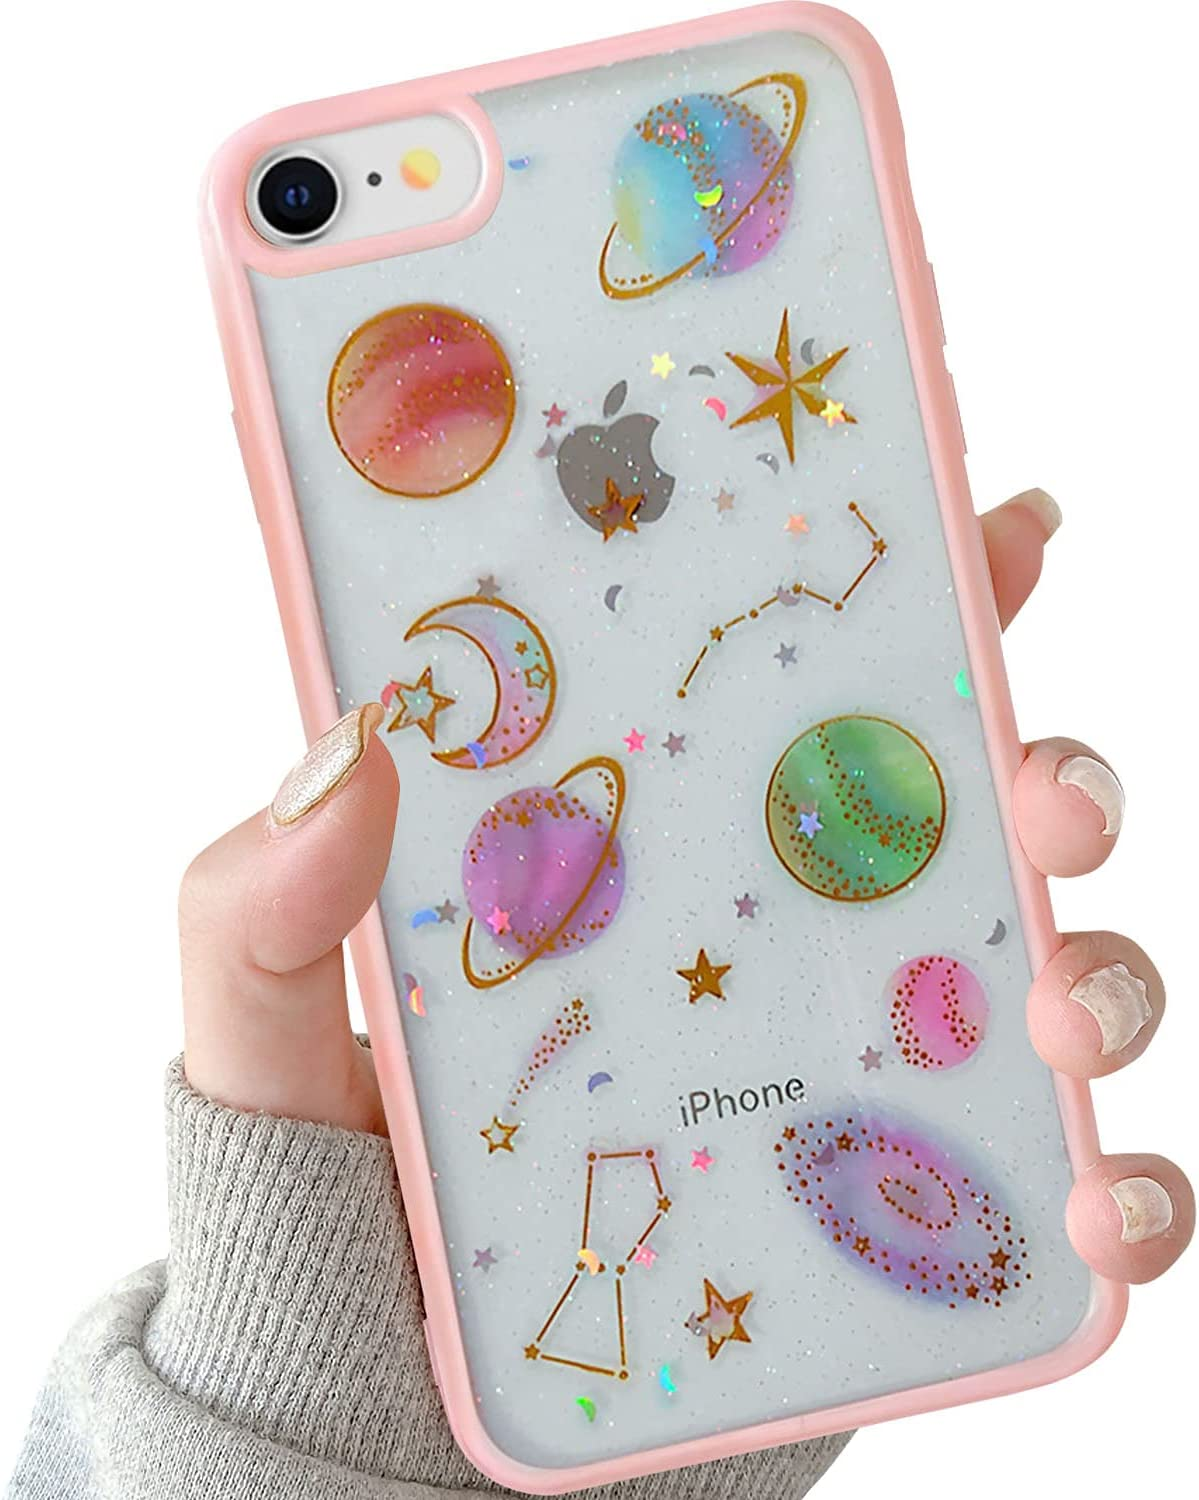 BOFTALE iPhone 7 iPhone 8 Cute Case Clear, Handmade Glitter Bling Sparkle Design Slim Soft TPU Pretty Phone Cover for Girls Women Compatible iPhone 8/7(Pink)